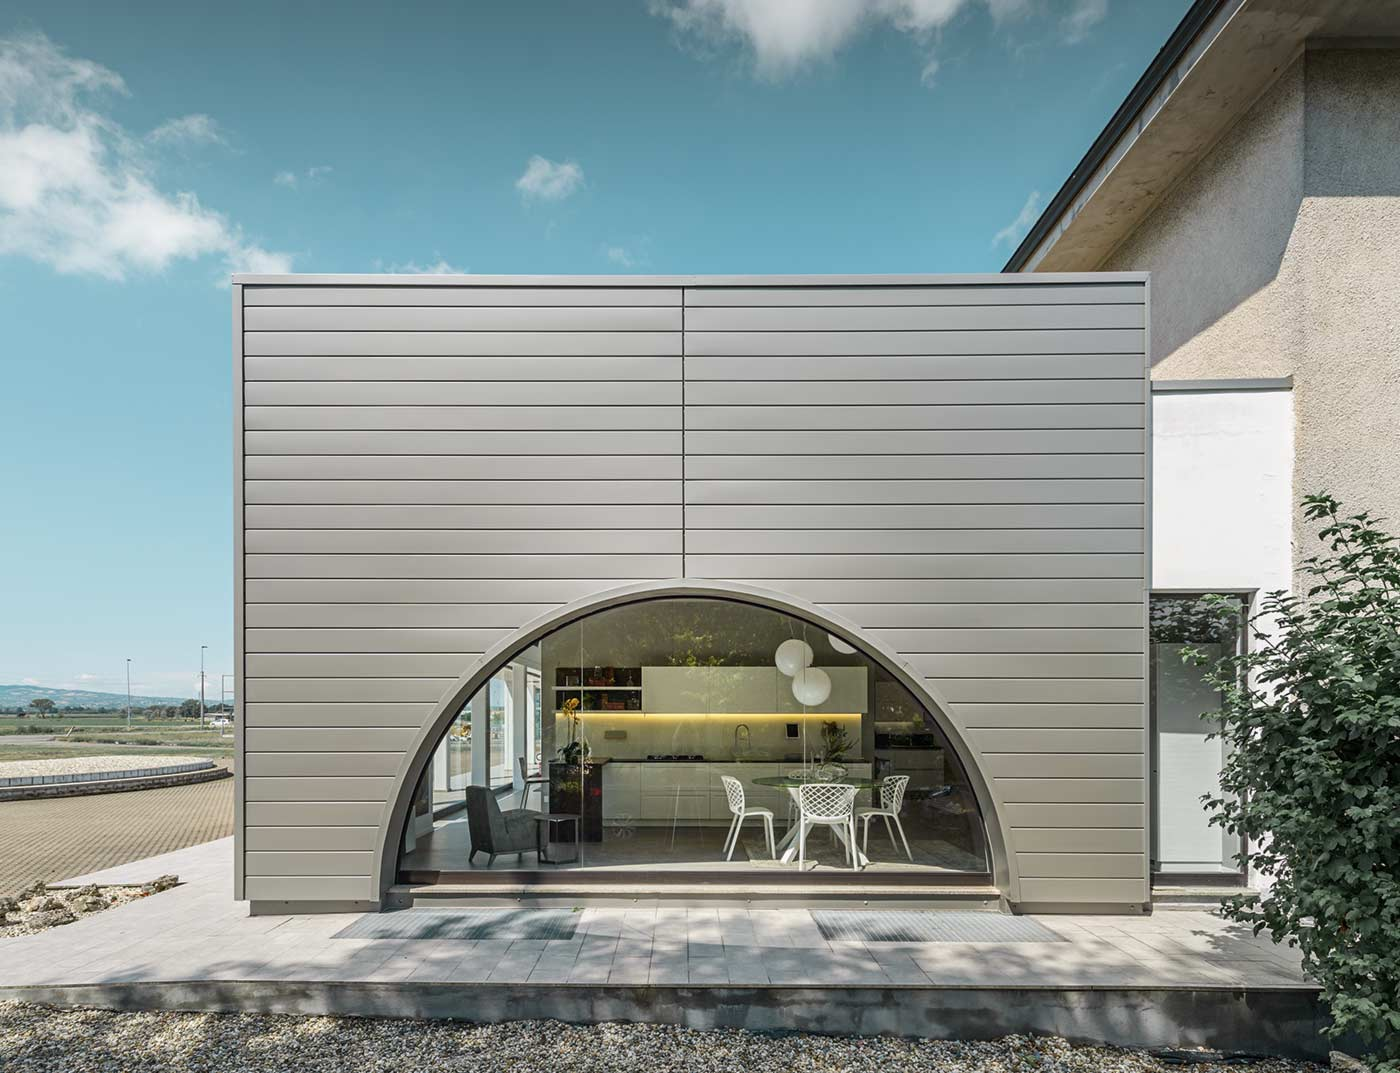 Flat-roof extension with a curved window façade, the façade is clad with horizontal aluminium panels, the PREFA sidings in smoke silver.